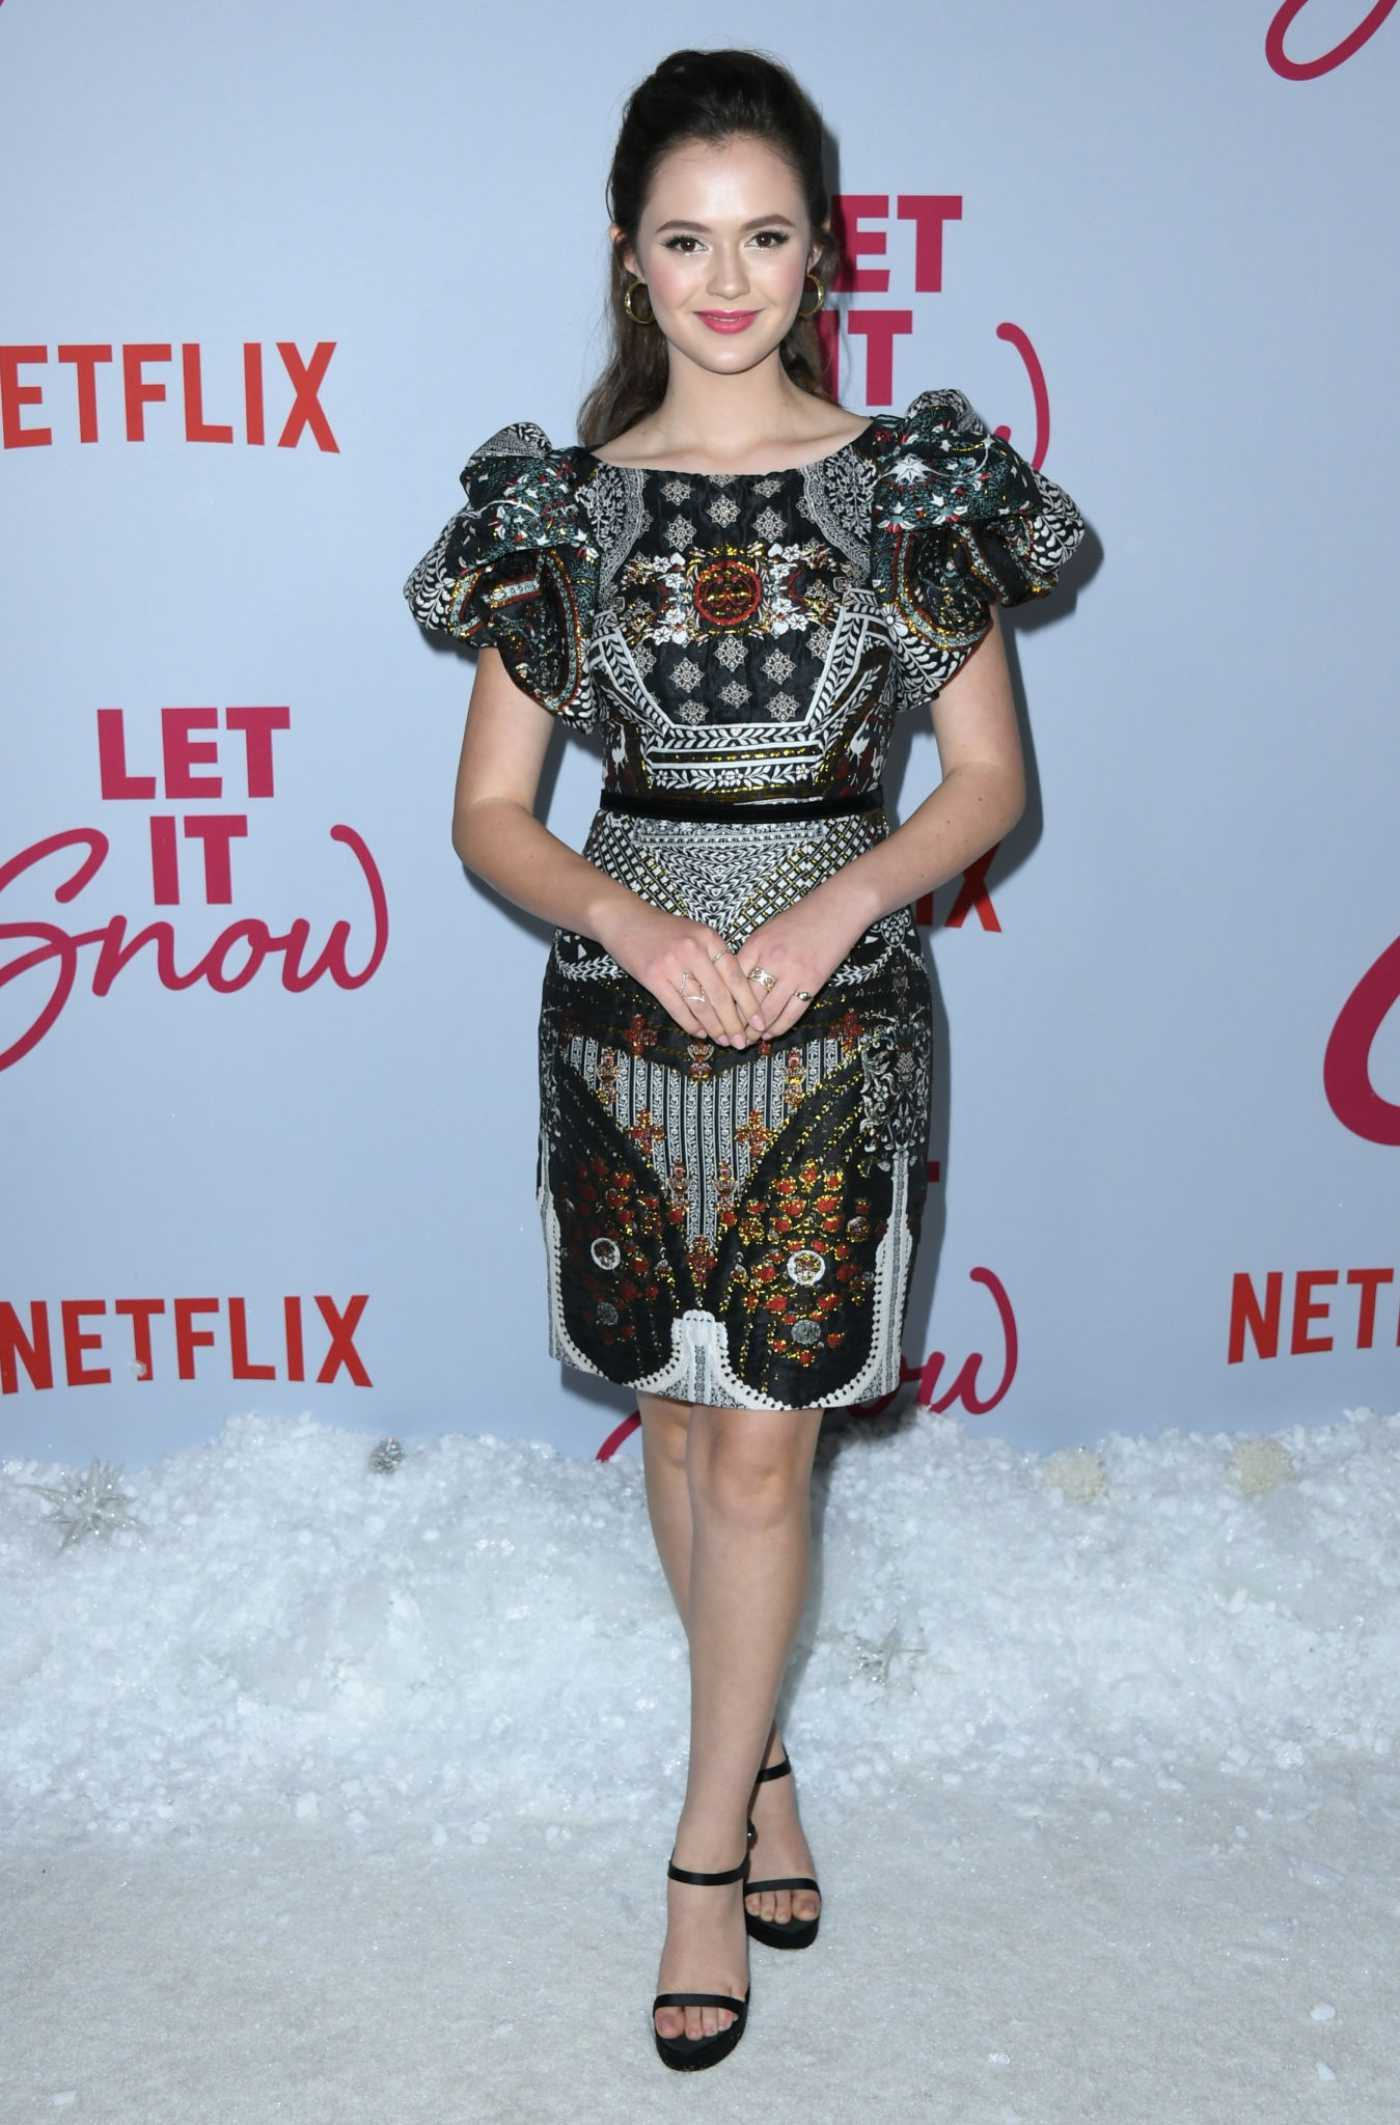 Olivia Sanabia Attends Netflix's Let It Snow Premiere in Los Angeles 11/04/2019